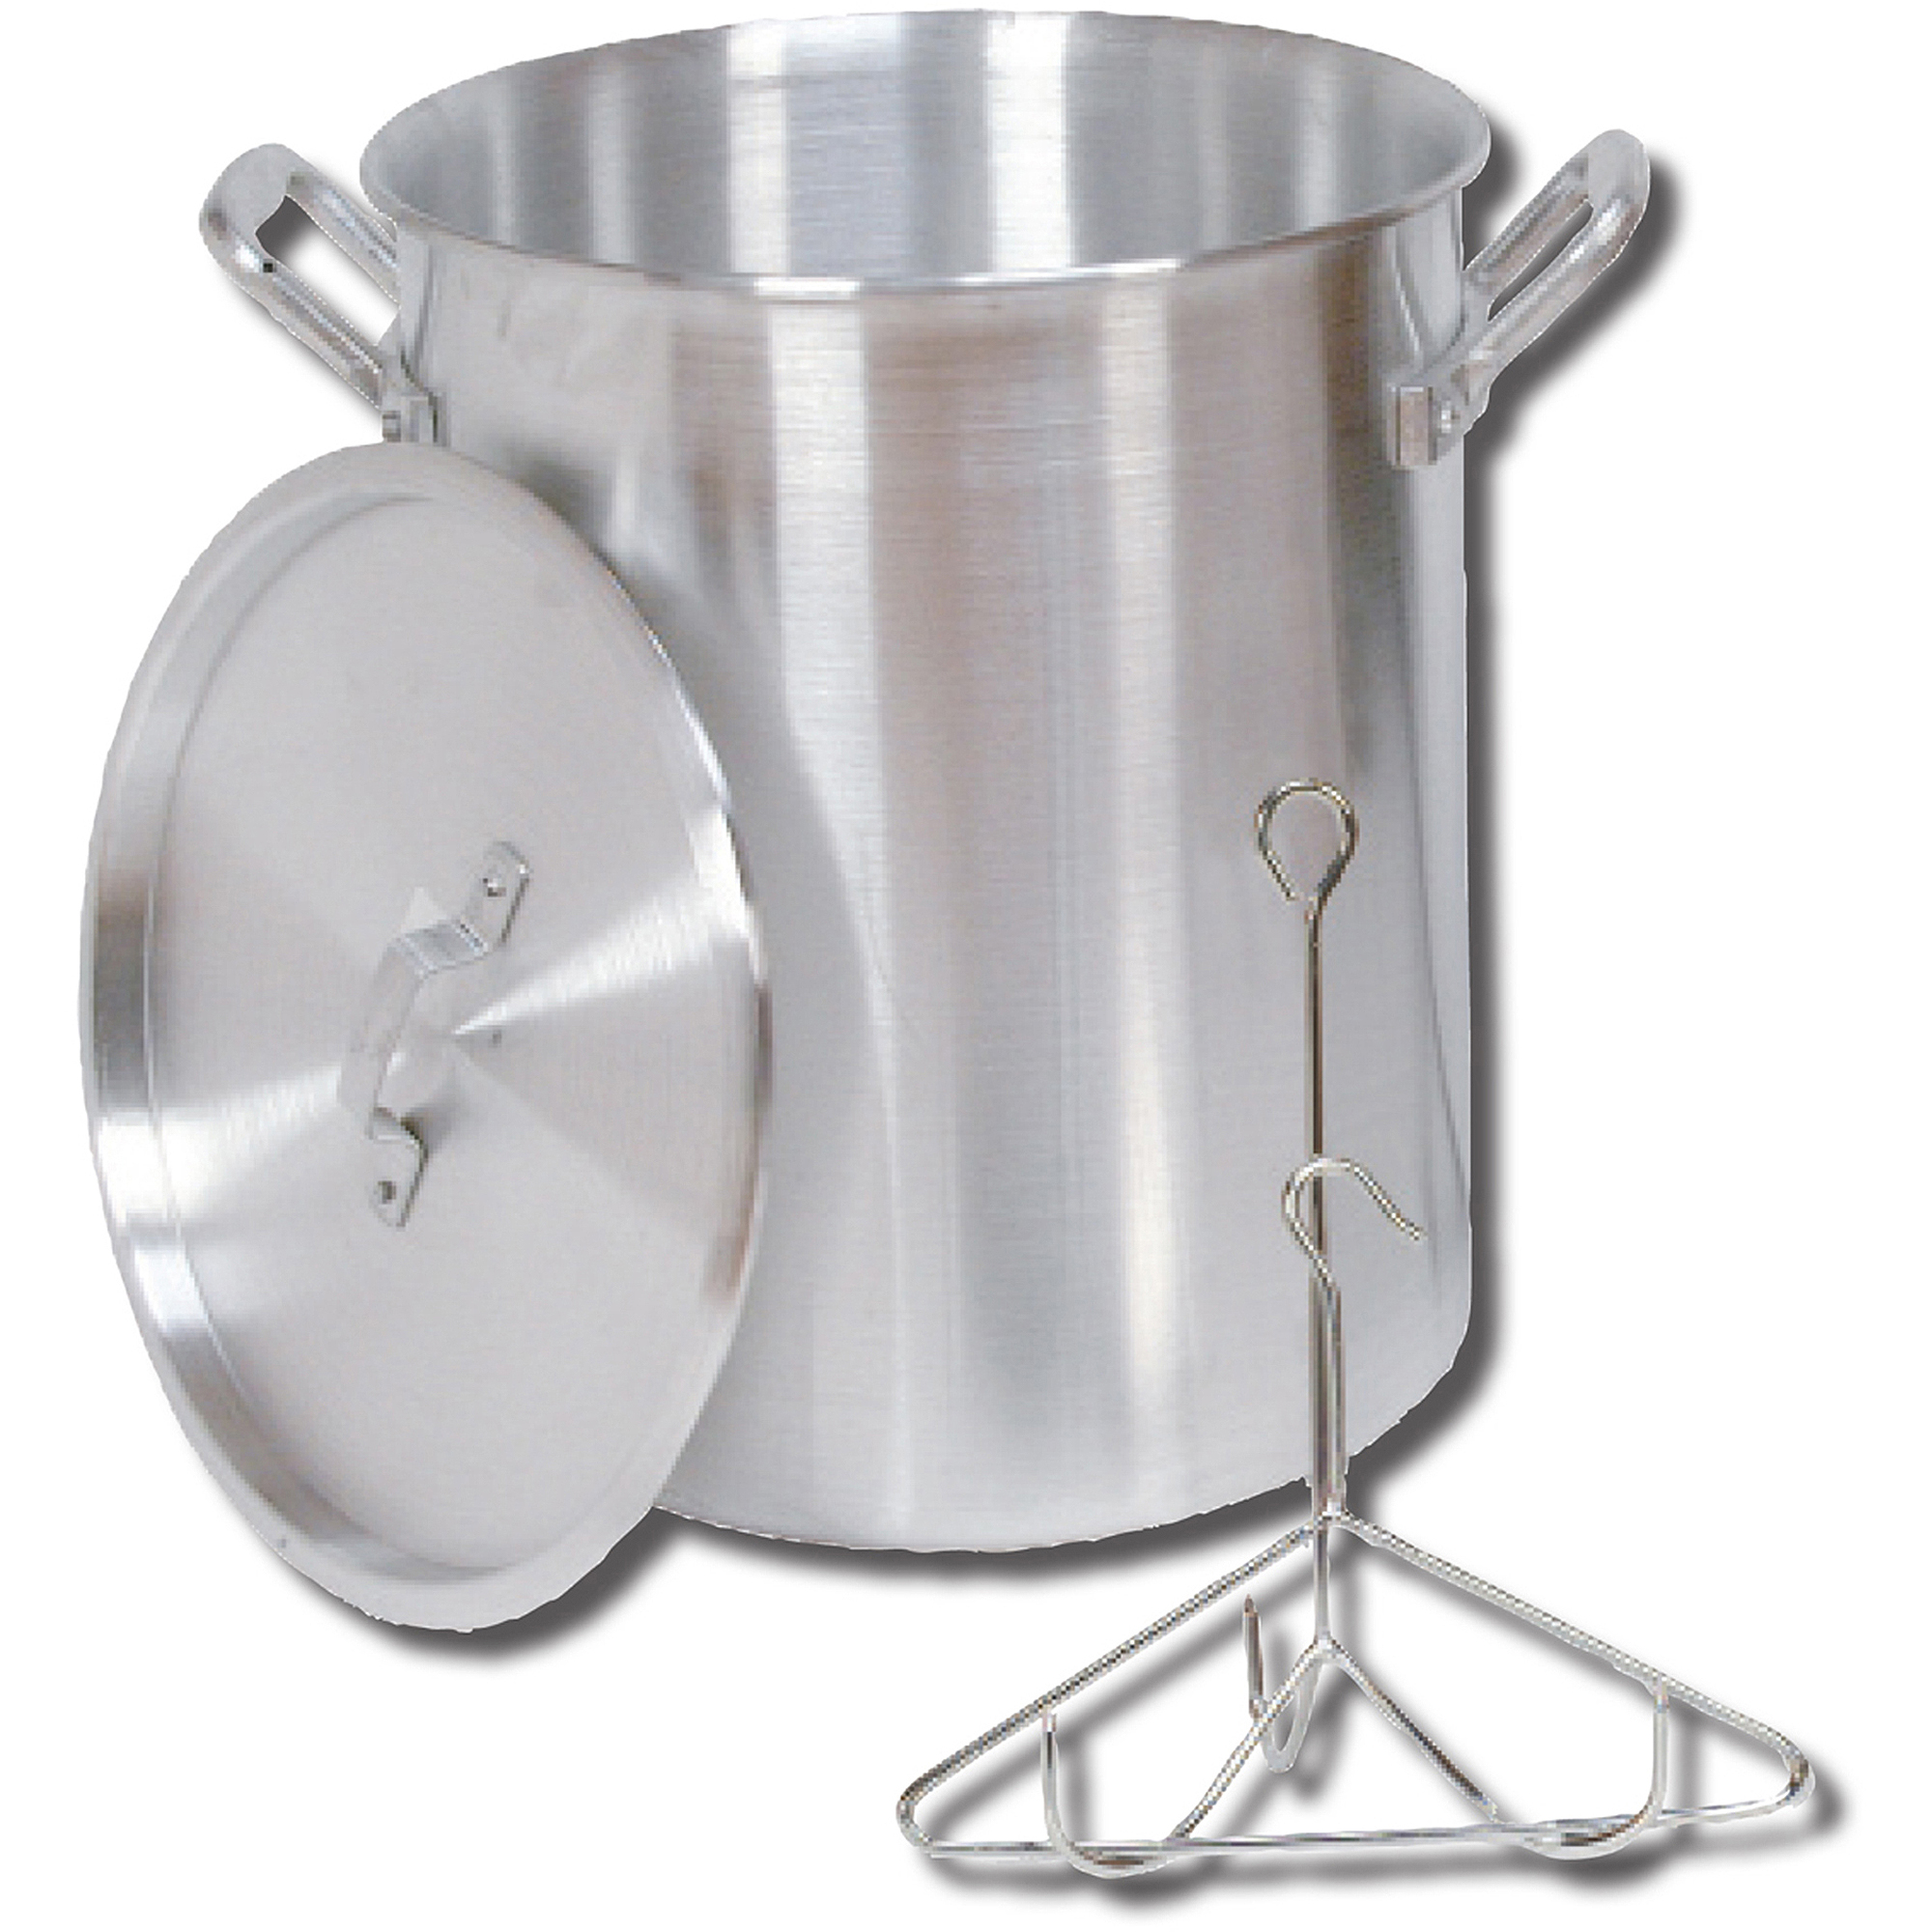 King Kooker Aluminum Turkey Cooking Pot Set